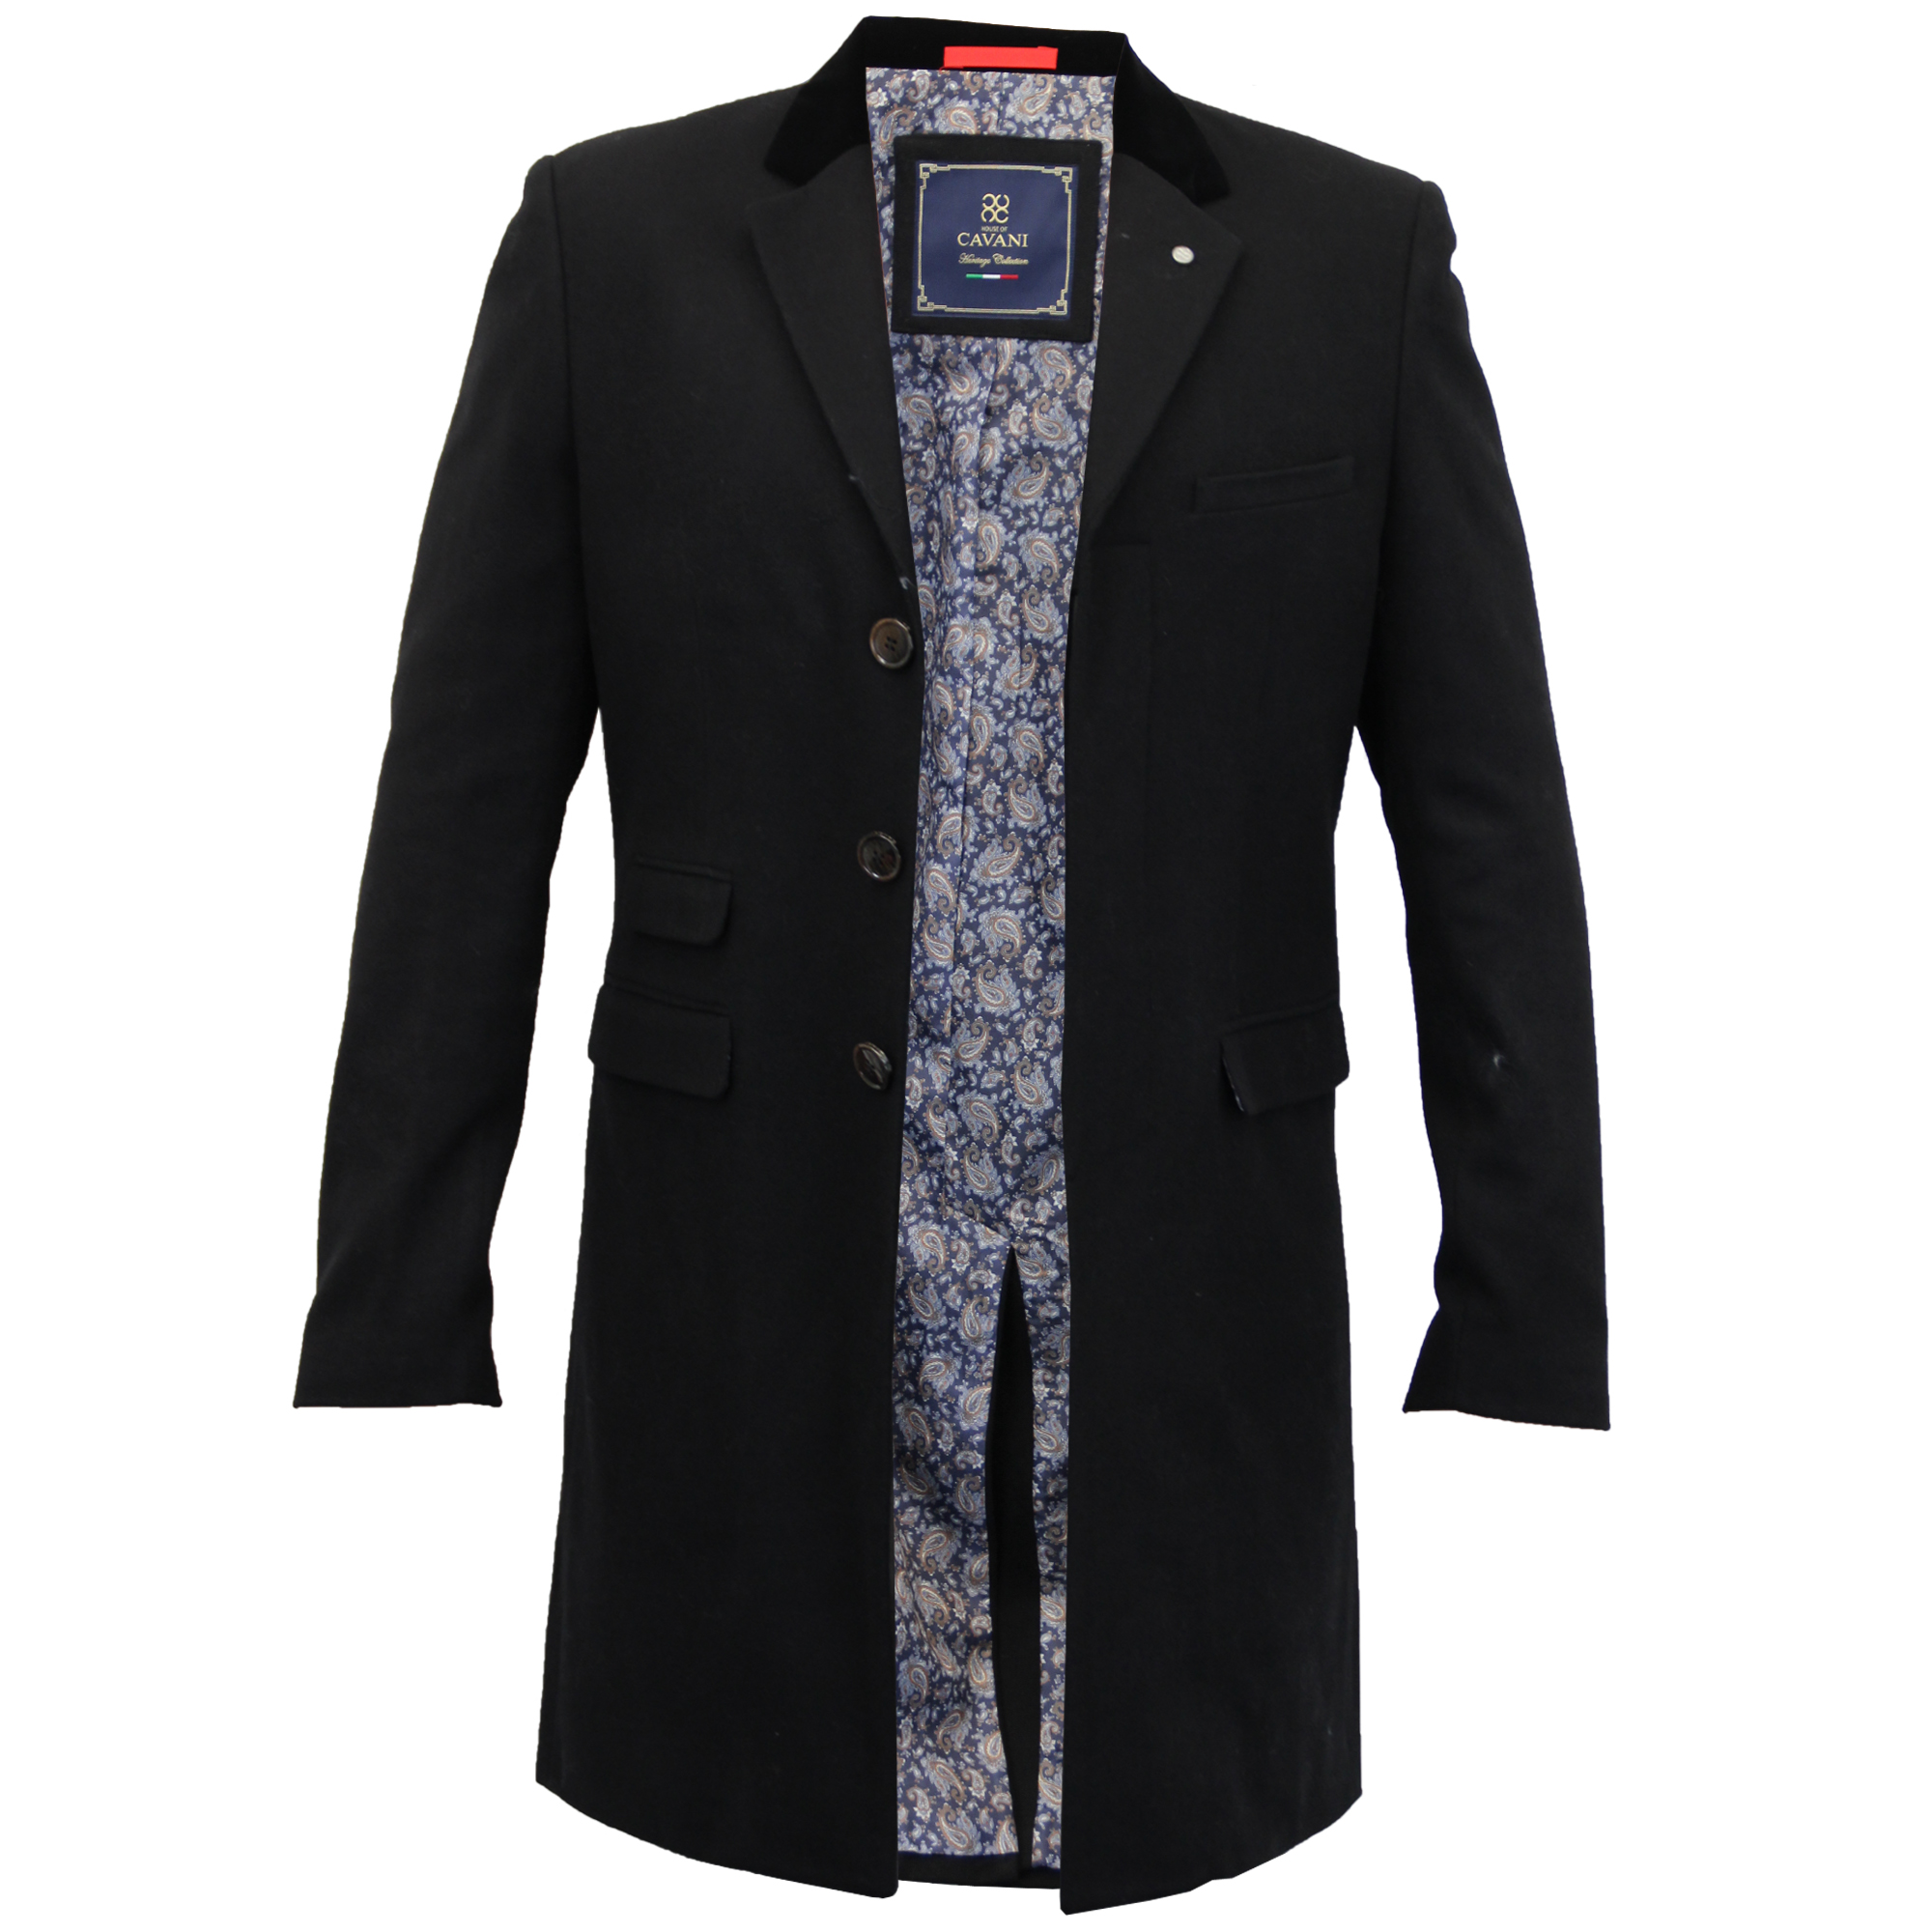 Shop for men's slim fit blazers & slim fit sports coats. See the latest styles, brands & colors of slim fit blazers from Men's Wearhouse.